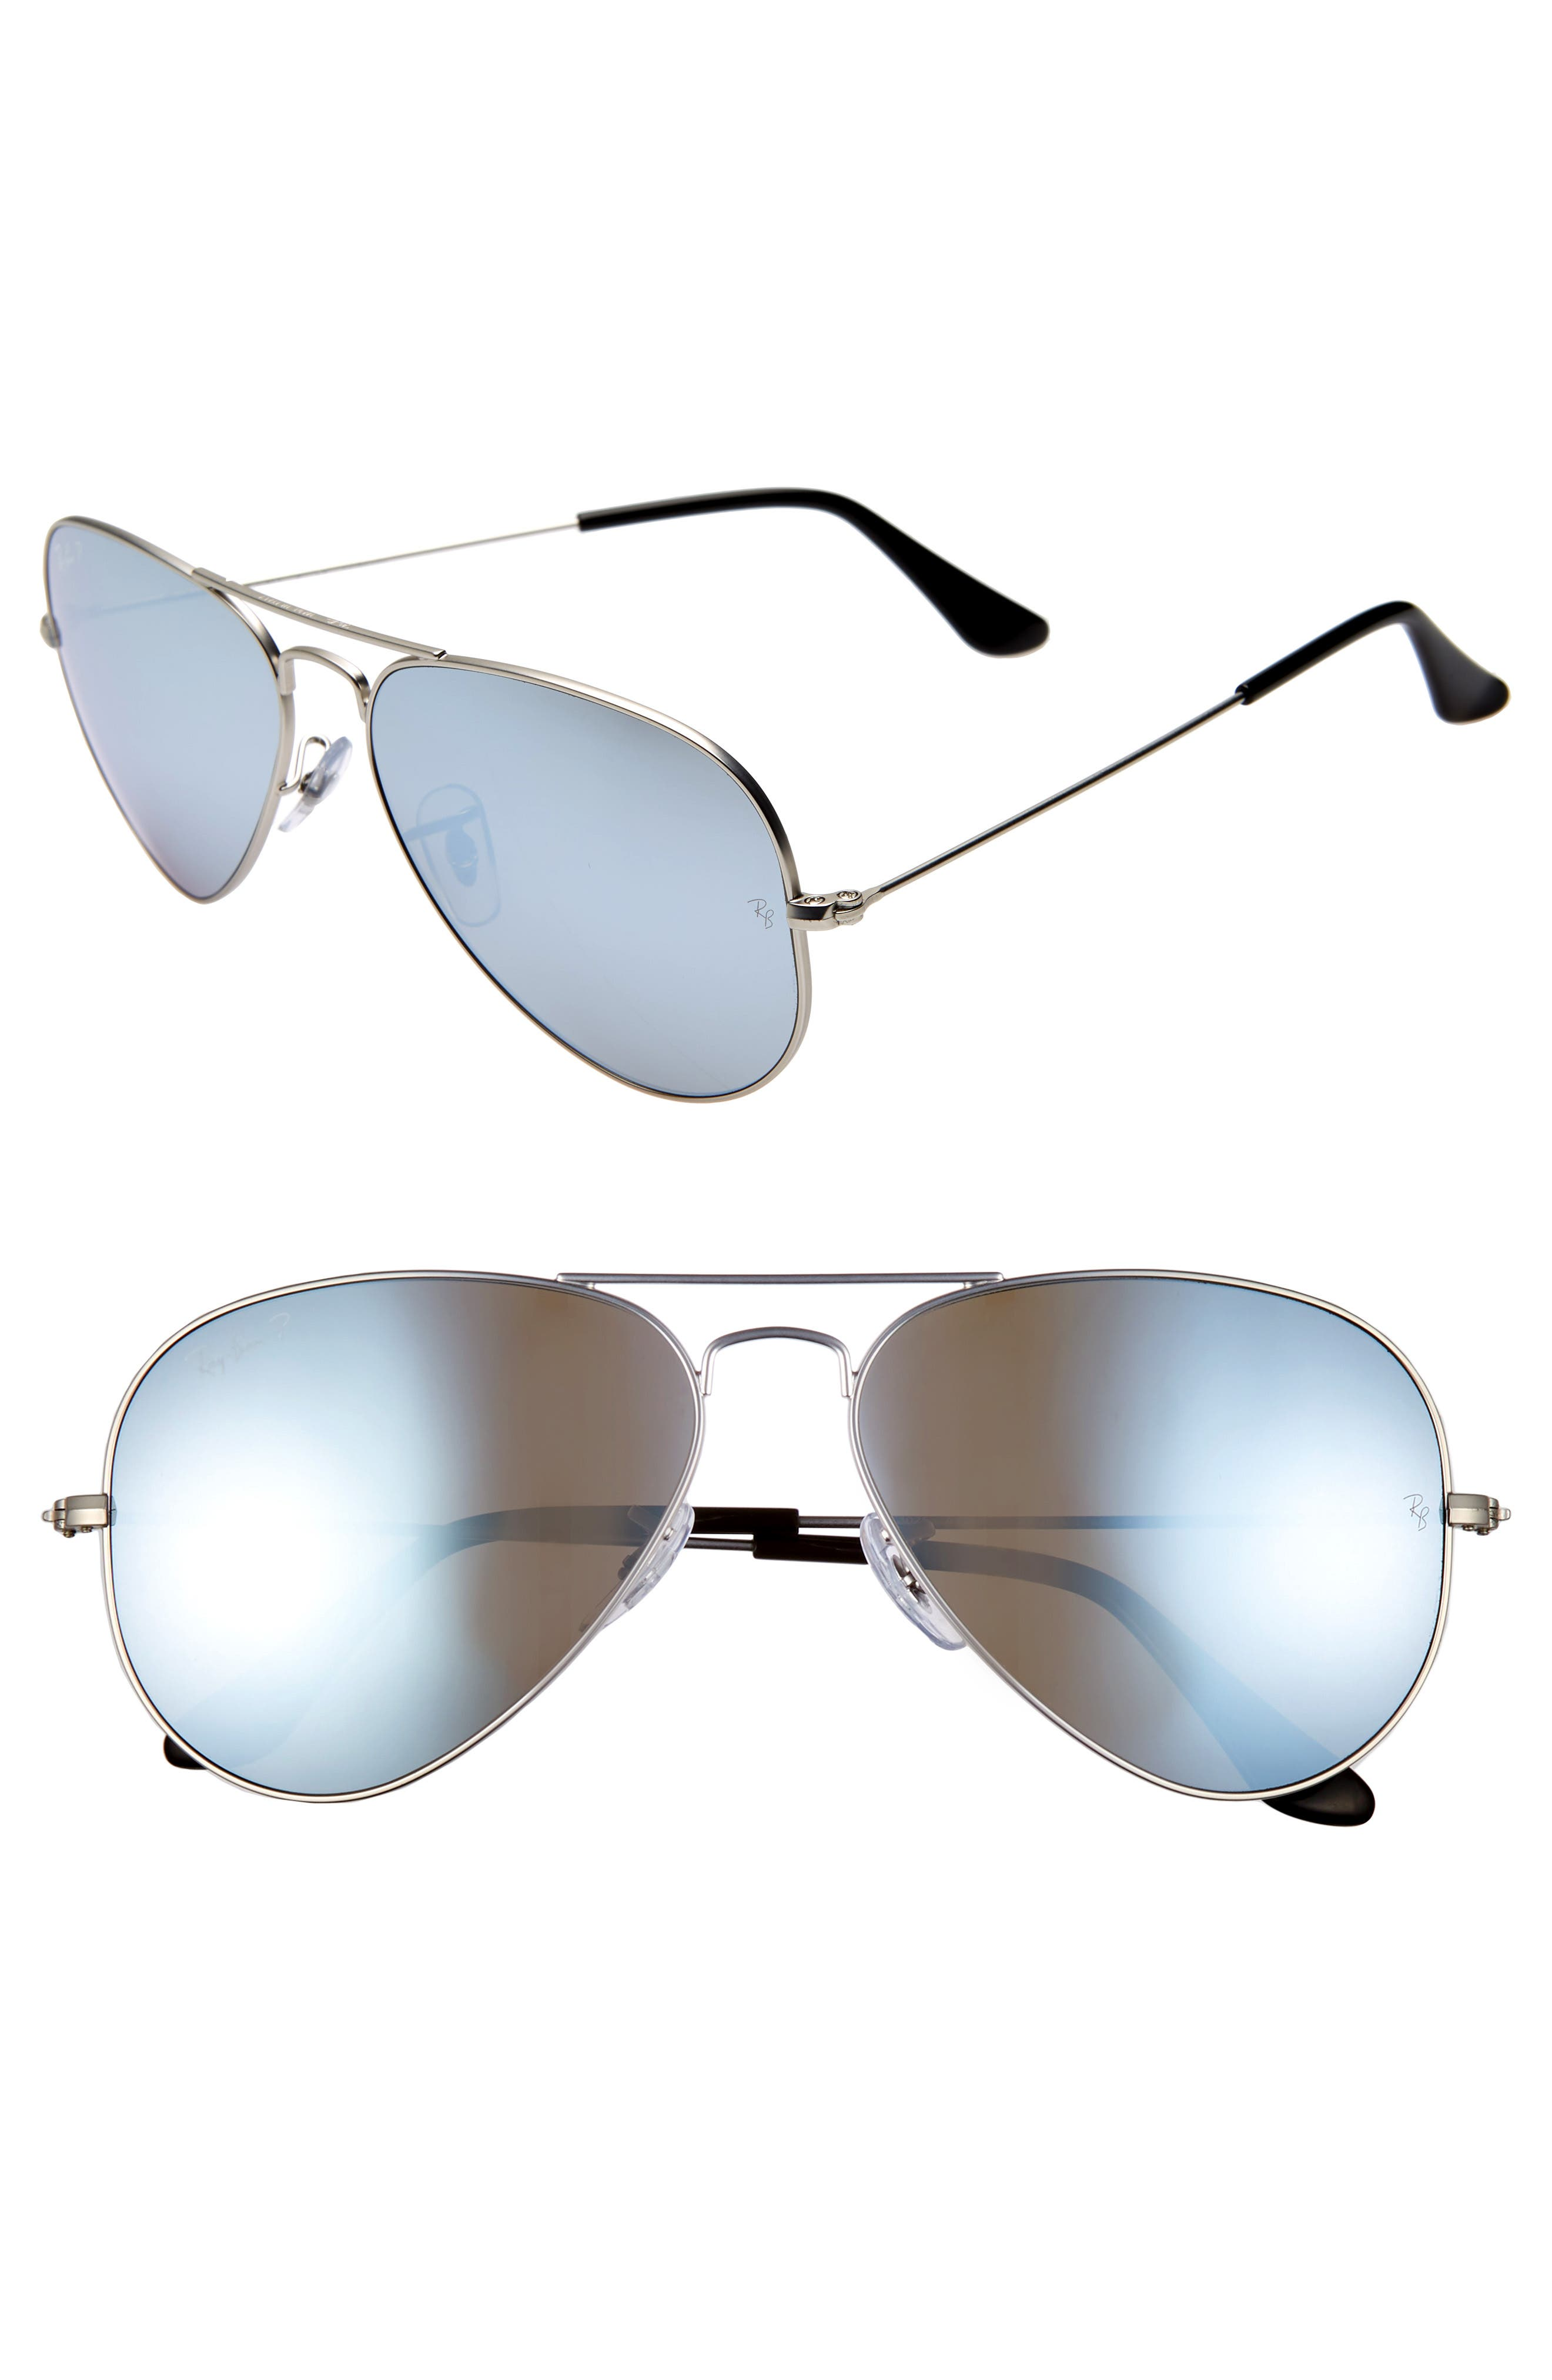 RAY-BAN, Standard Icons 58mm Mirrored Polarized Aviator Sunglasses, Main thumbnail 1, color, SILVER/ SILVER MIRROR